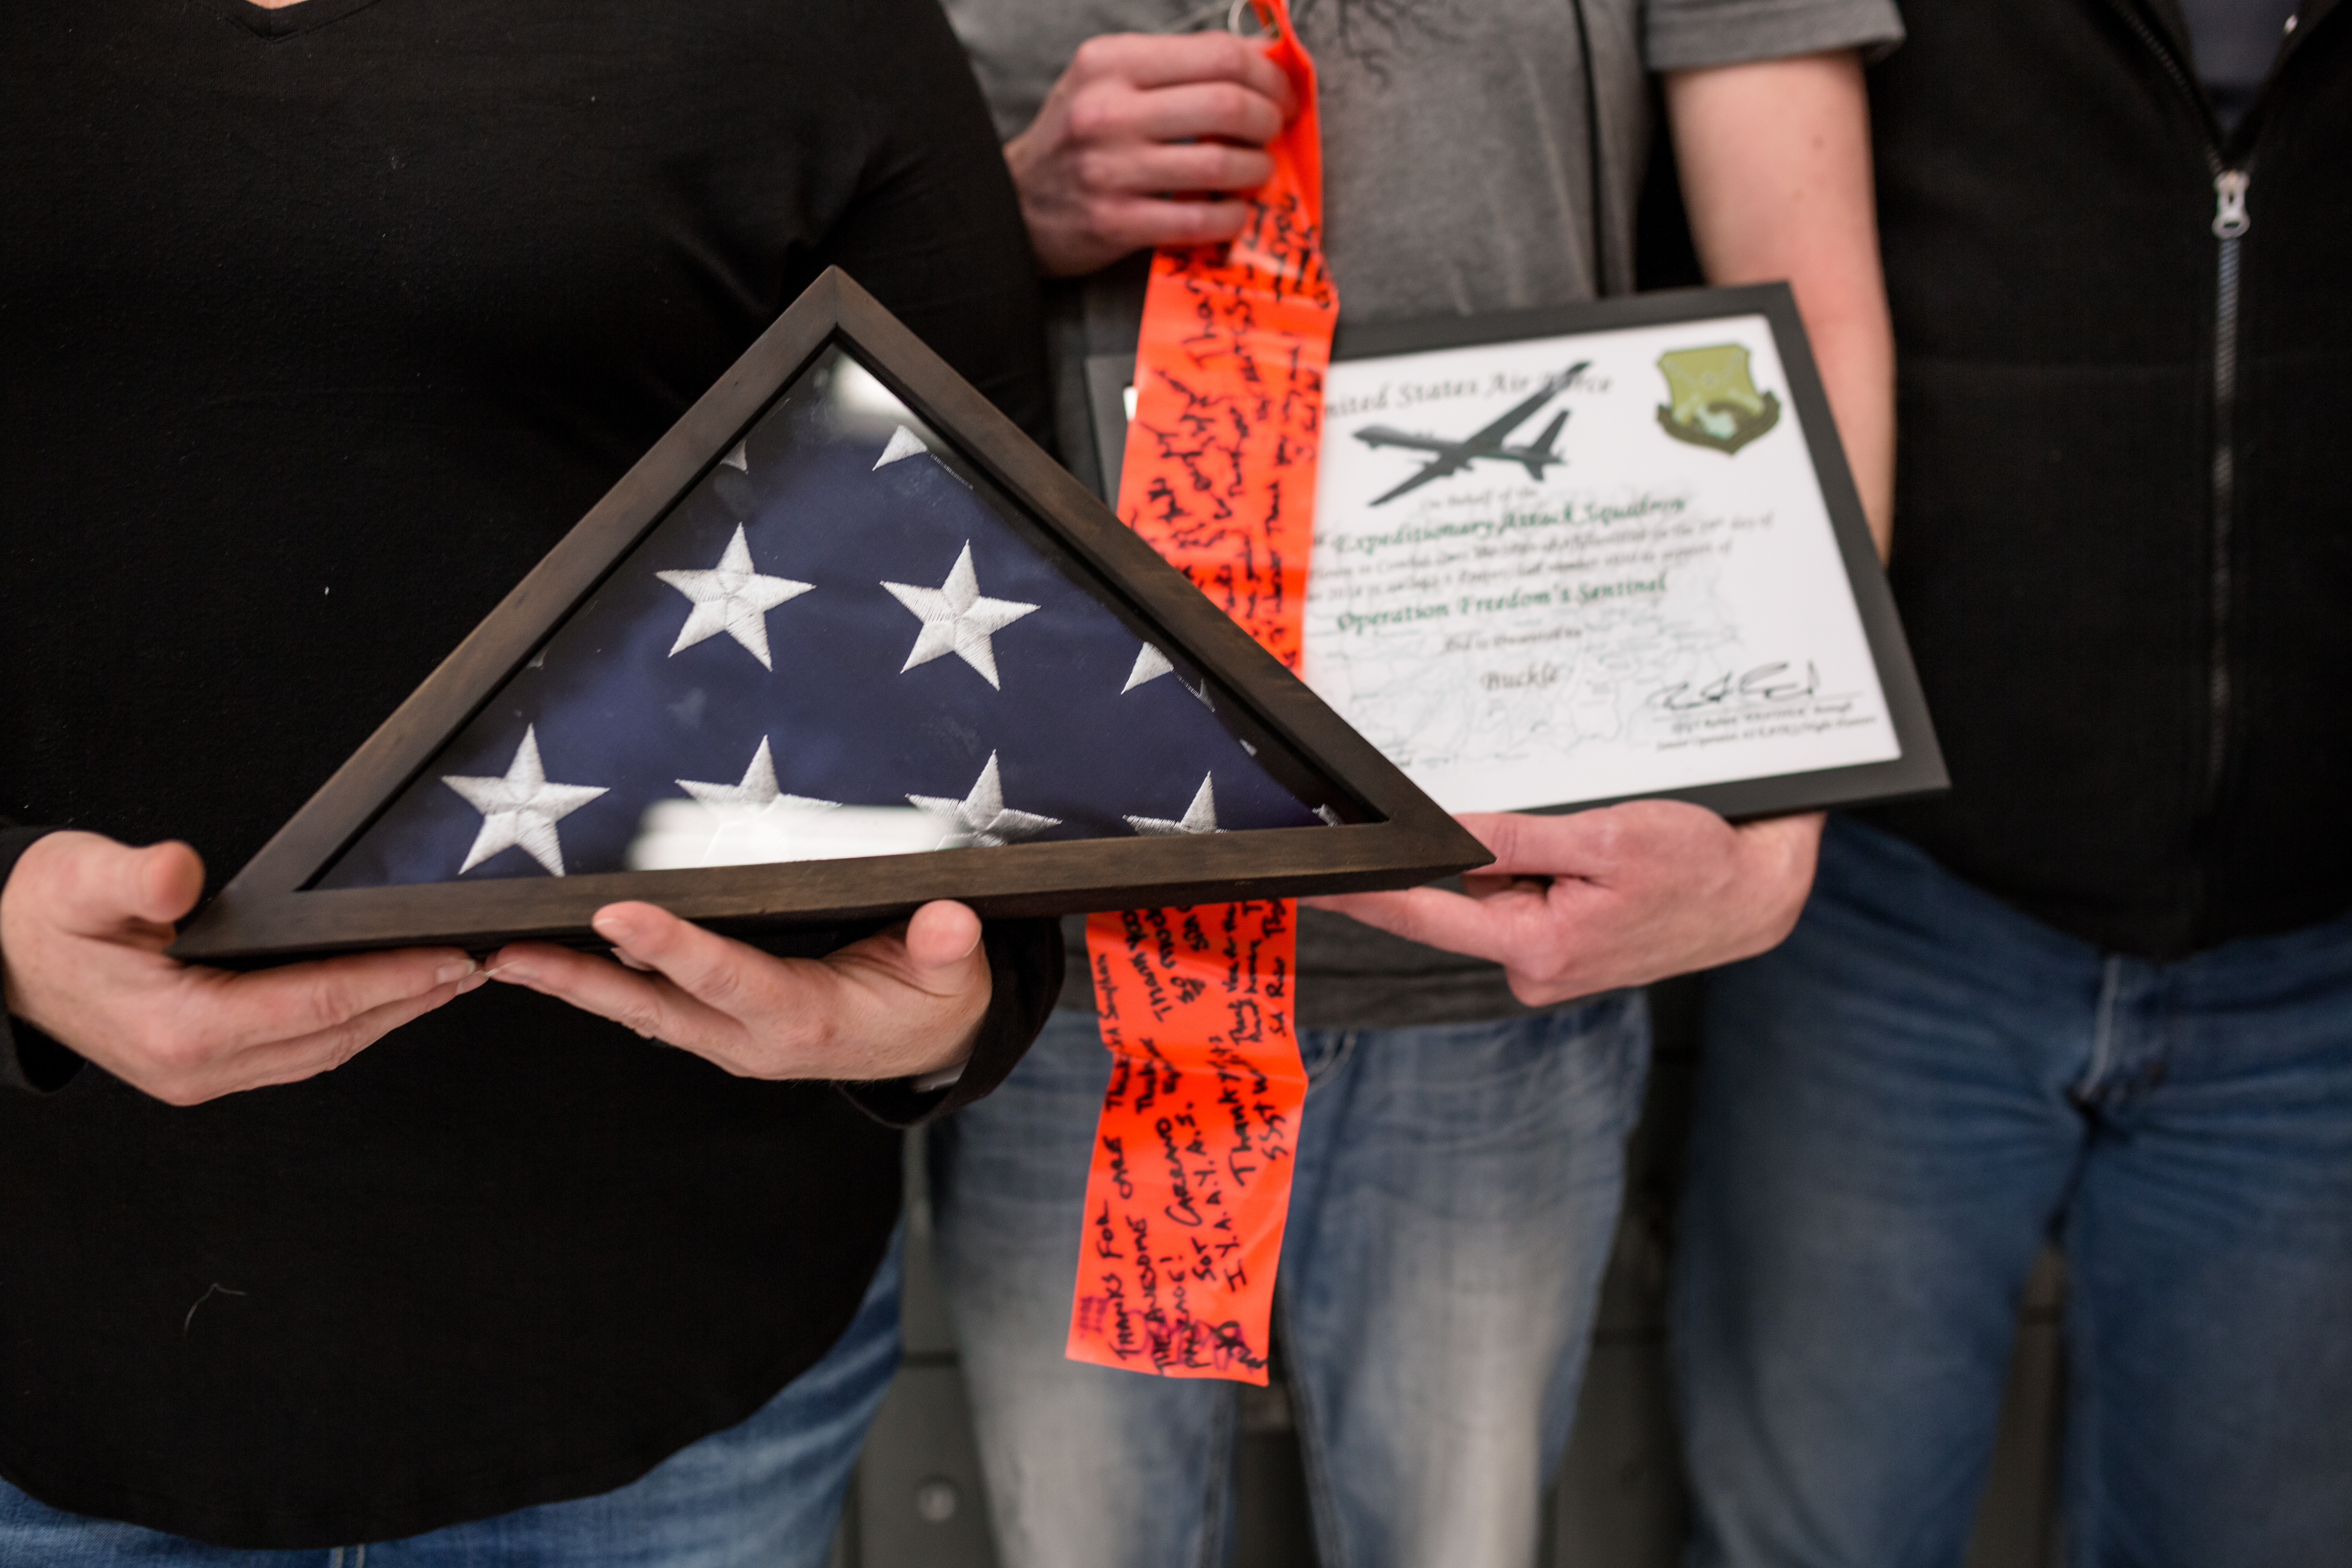 Buckle honored by United States Air Force with certificates and flag flown in Afghanistan during a combat mission in support of Operation Freedom's Sentinel